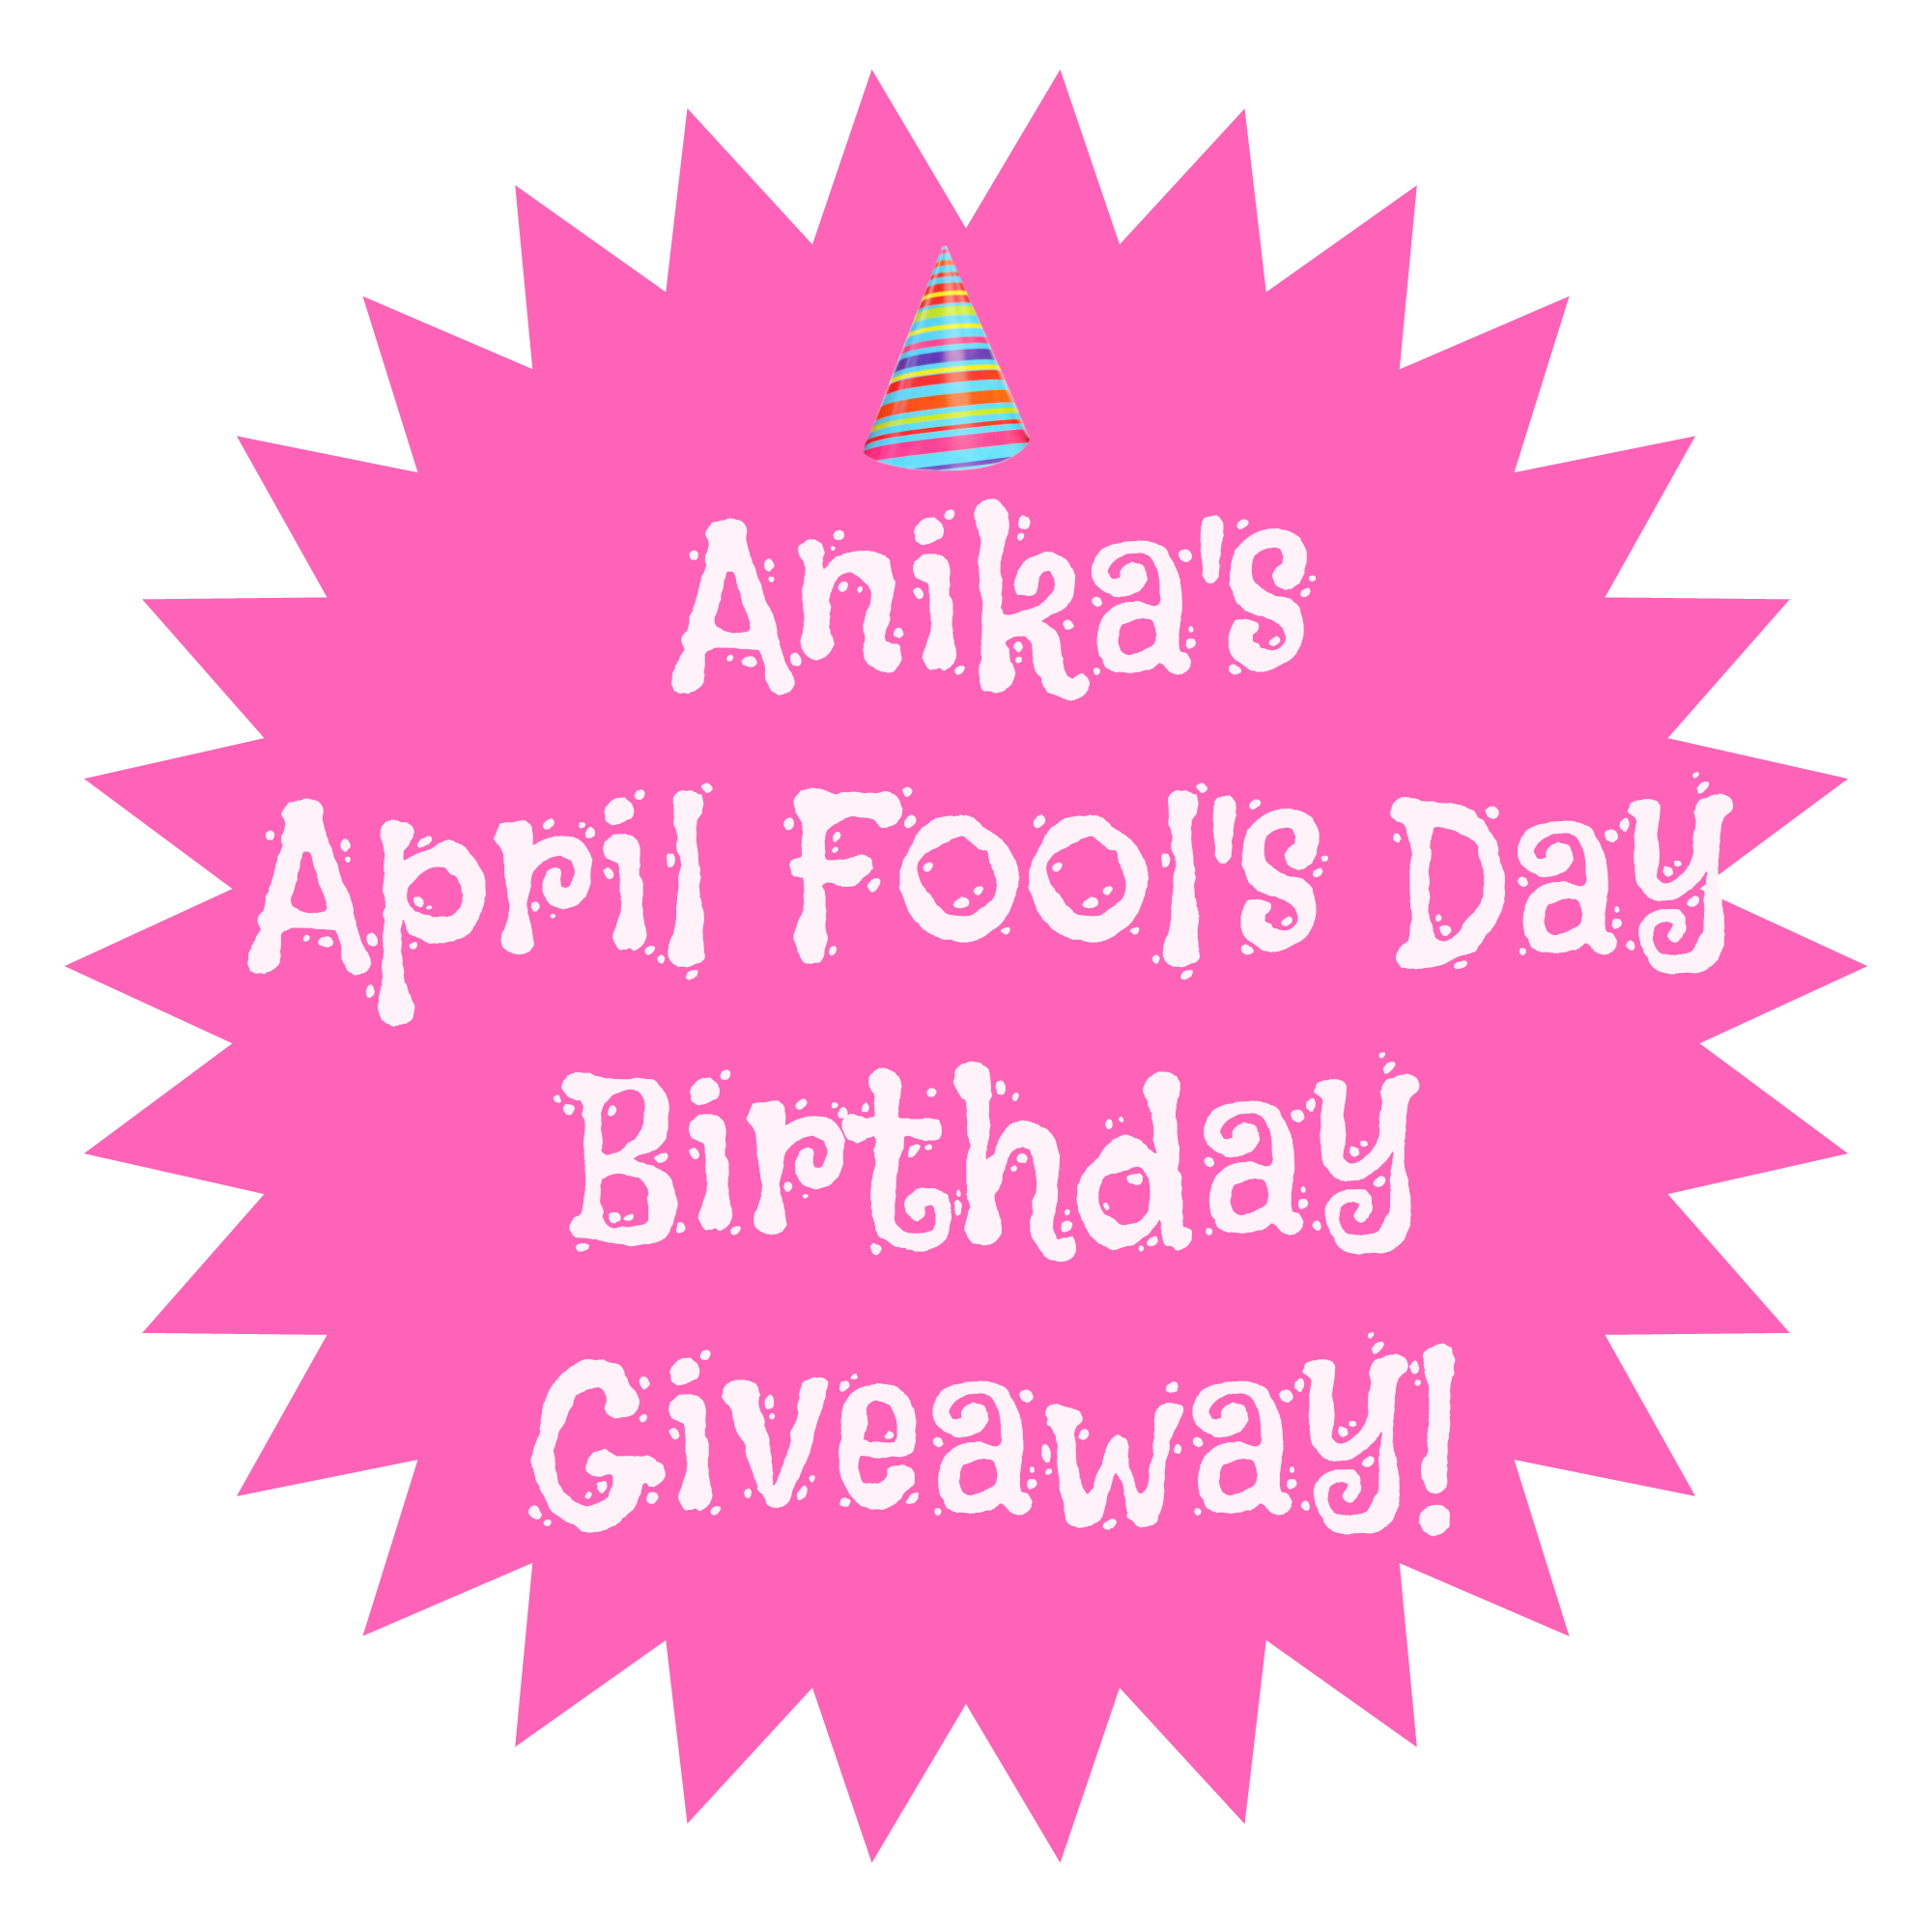 thanks to all who took a guess at the fool fact in my april fools day birthday giveaway this was so much fun